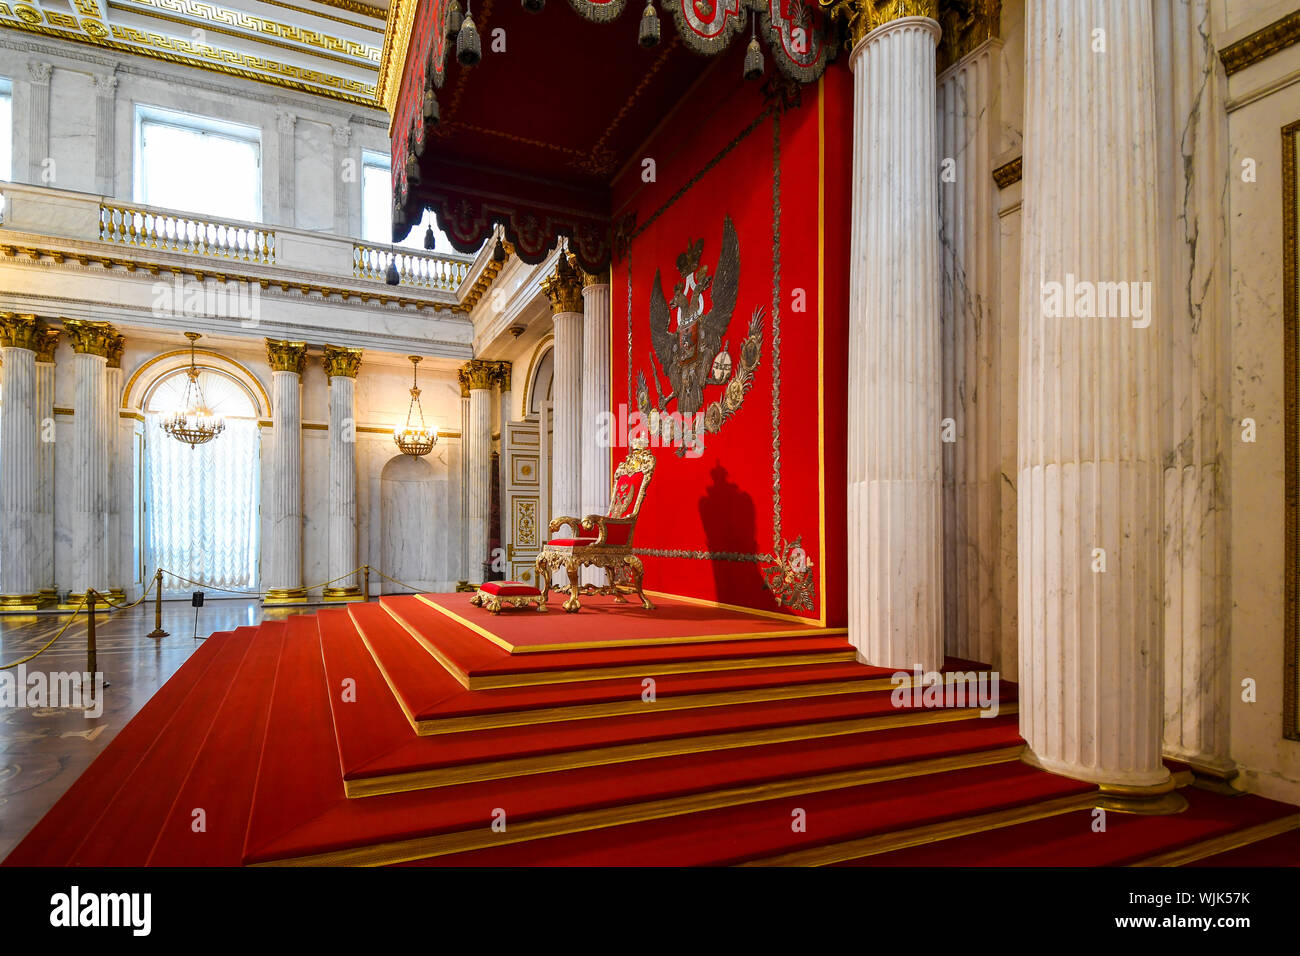 Steps lead up to the red ornate throne surrounded by columns in Catherine Palace in the town of Tsarskoye Selo, or Pushkin, Russia. Stock Photo